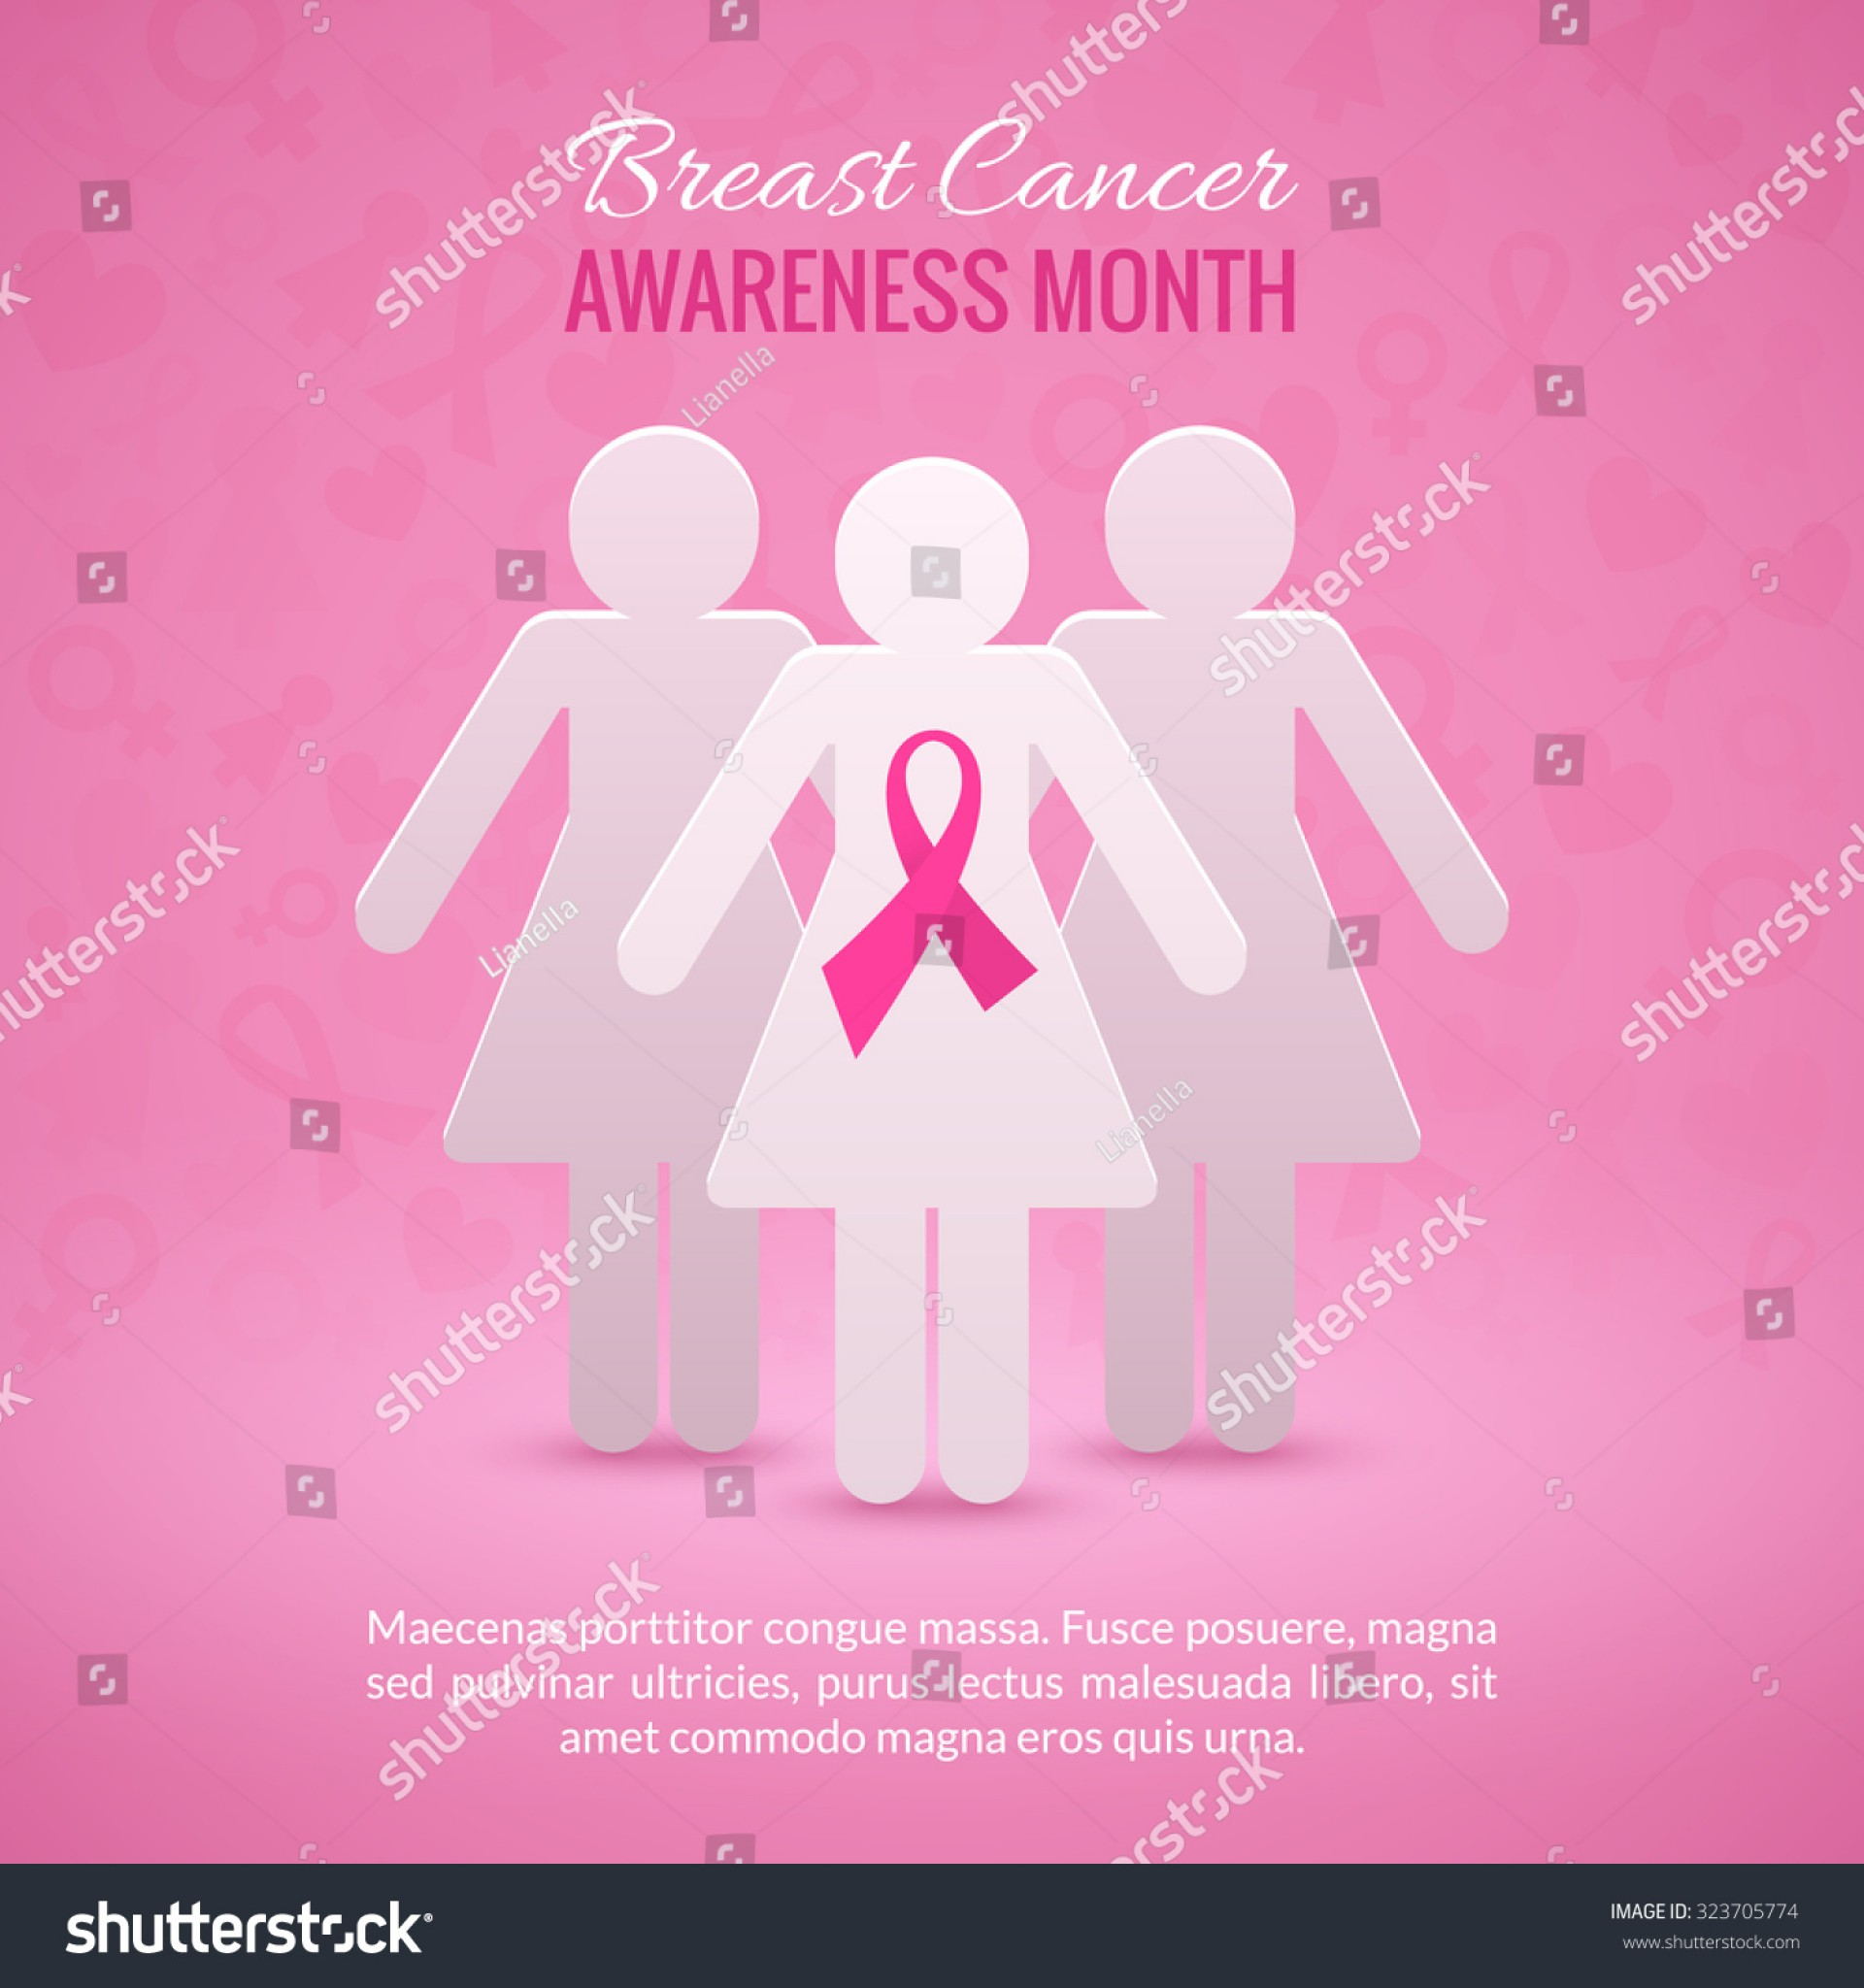 019 Research Paper Stock Vector Breast Cancer October Awareness Month Campaign Background With Girl Silhouettes And Pink Phenomenal Example 1920